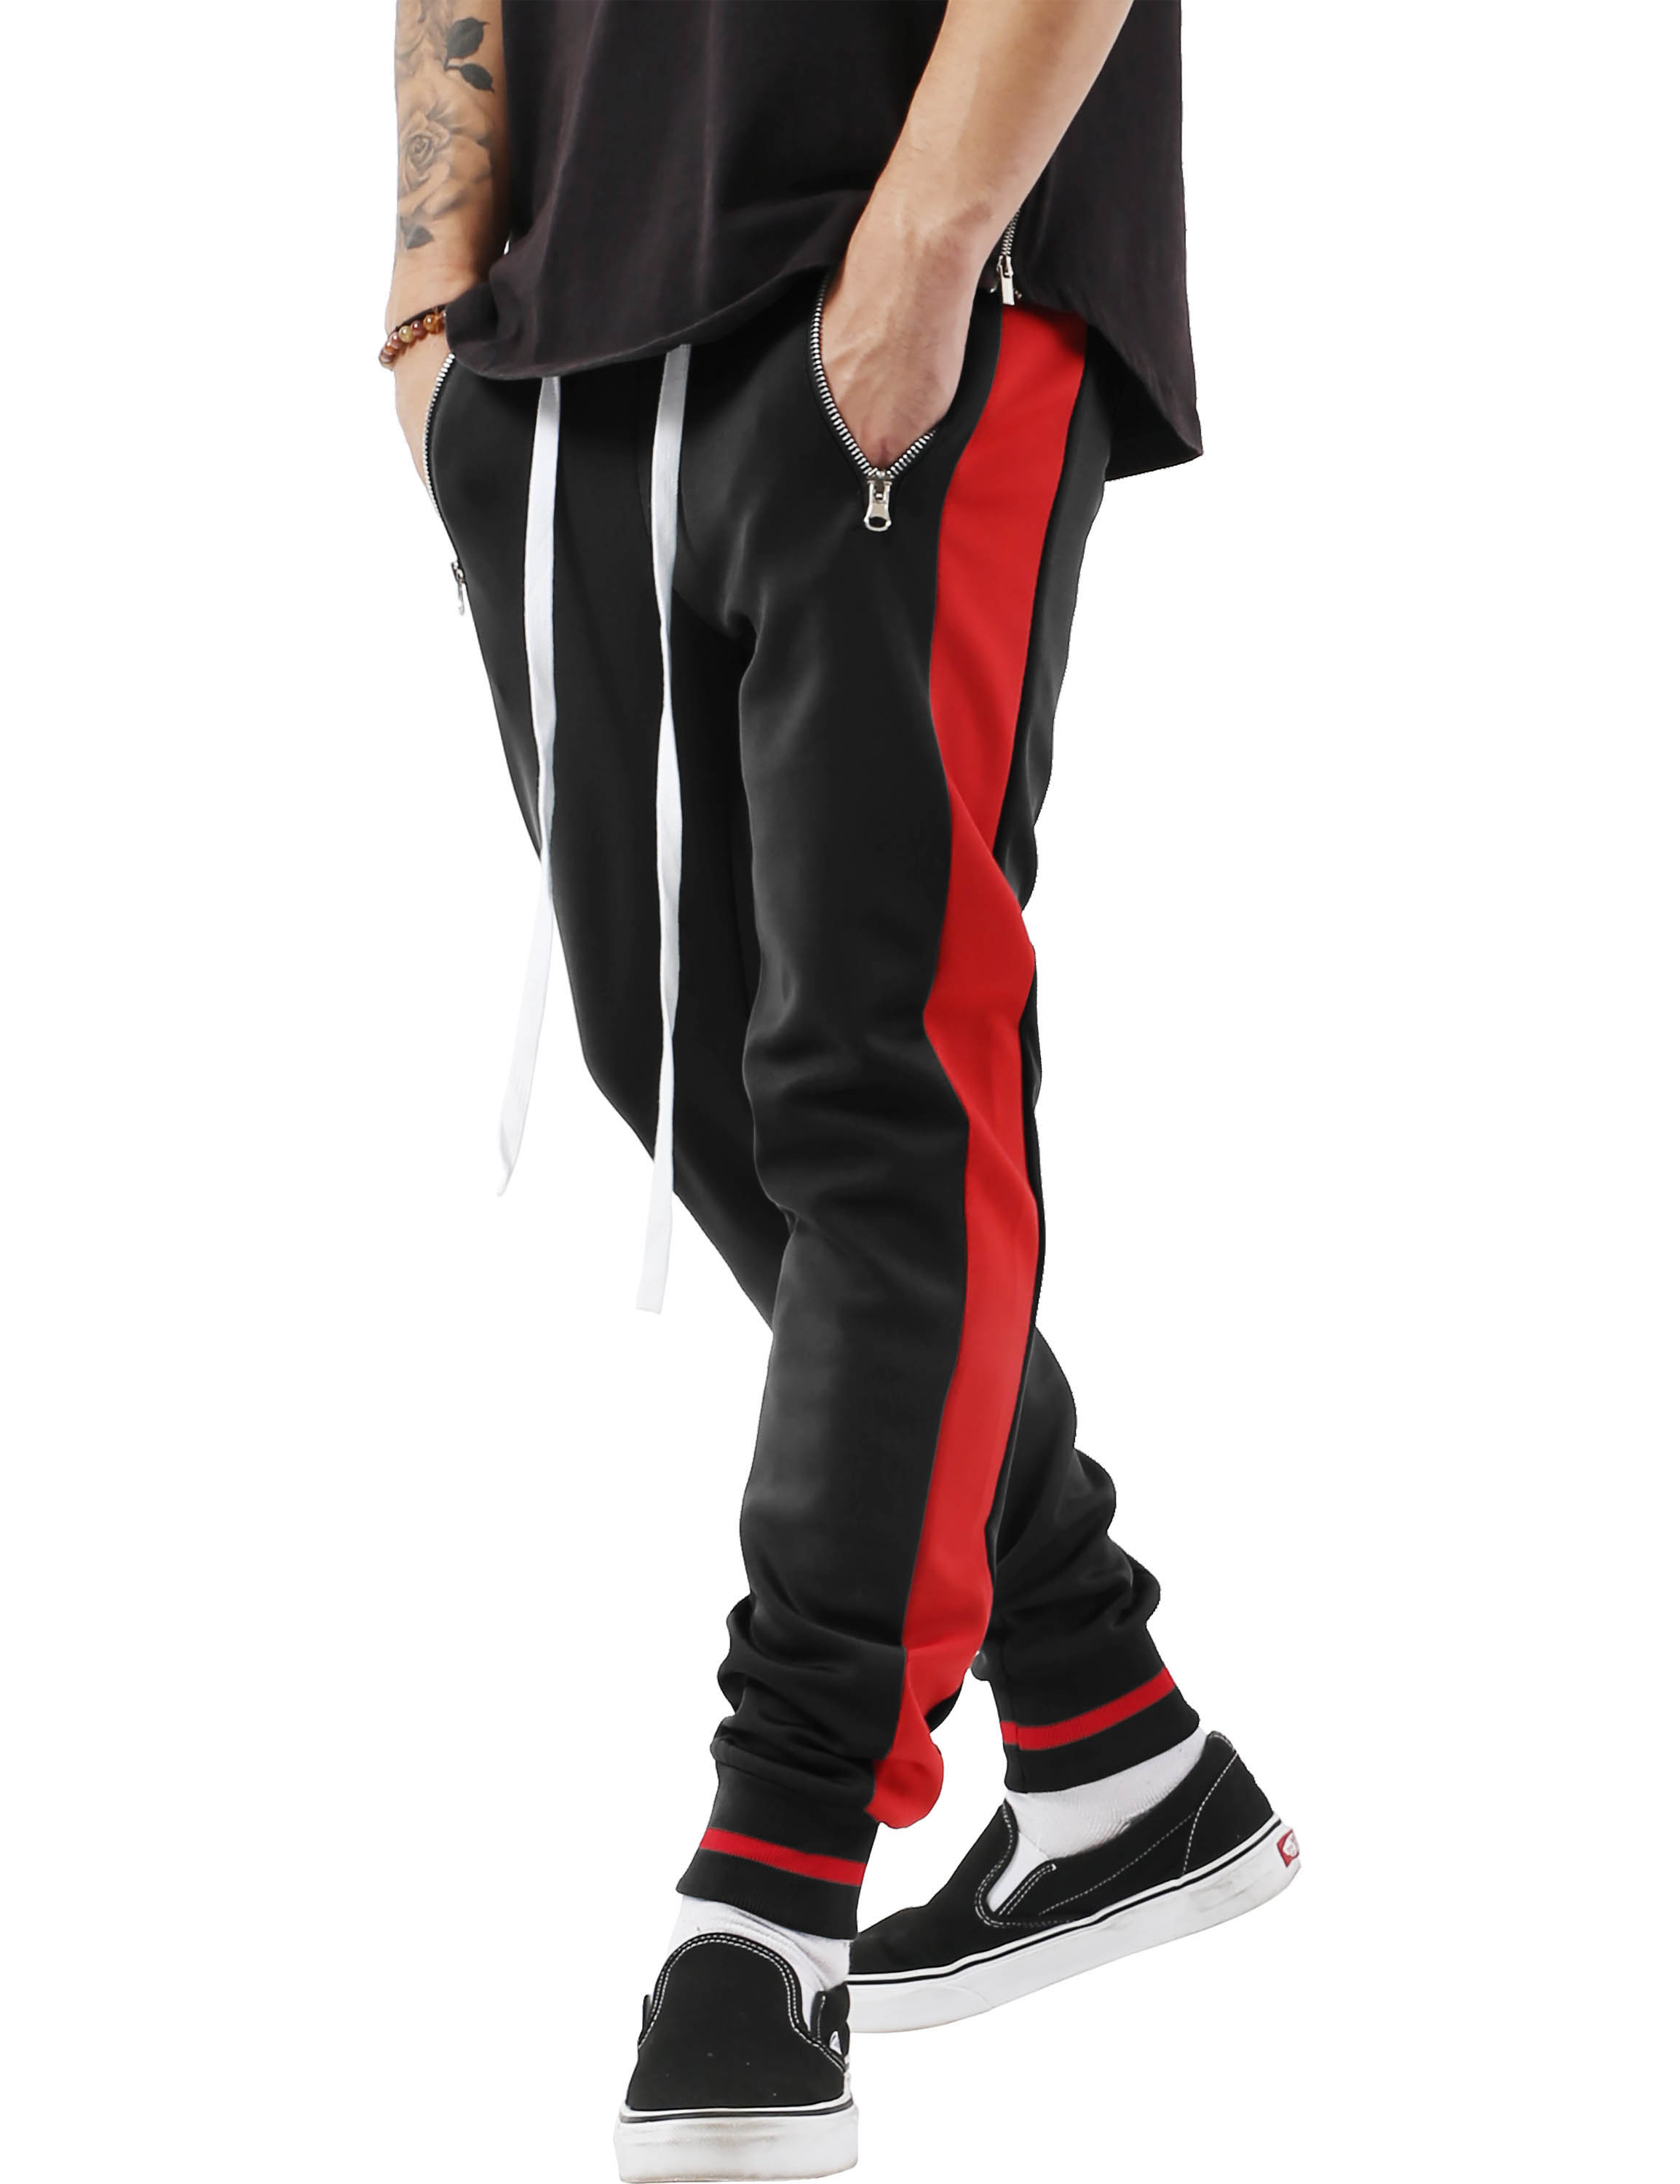 Men's Skinny fit Two Tone Stripe Track Pants Jogger with Zipper Pockets